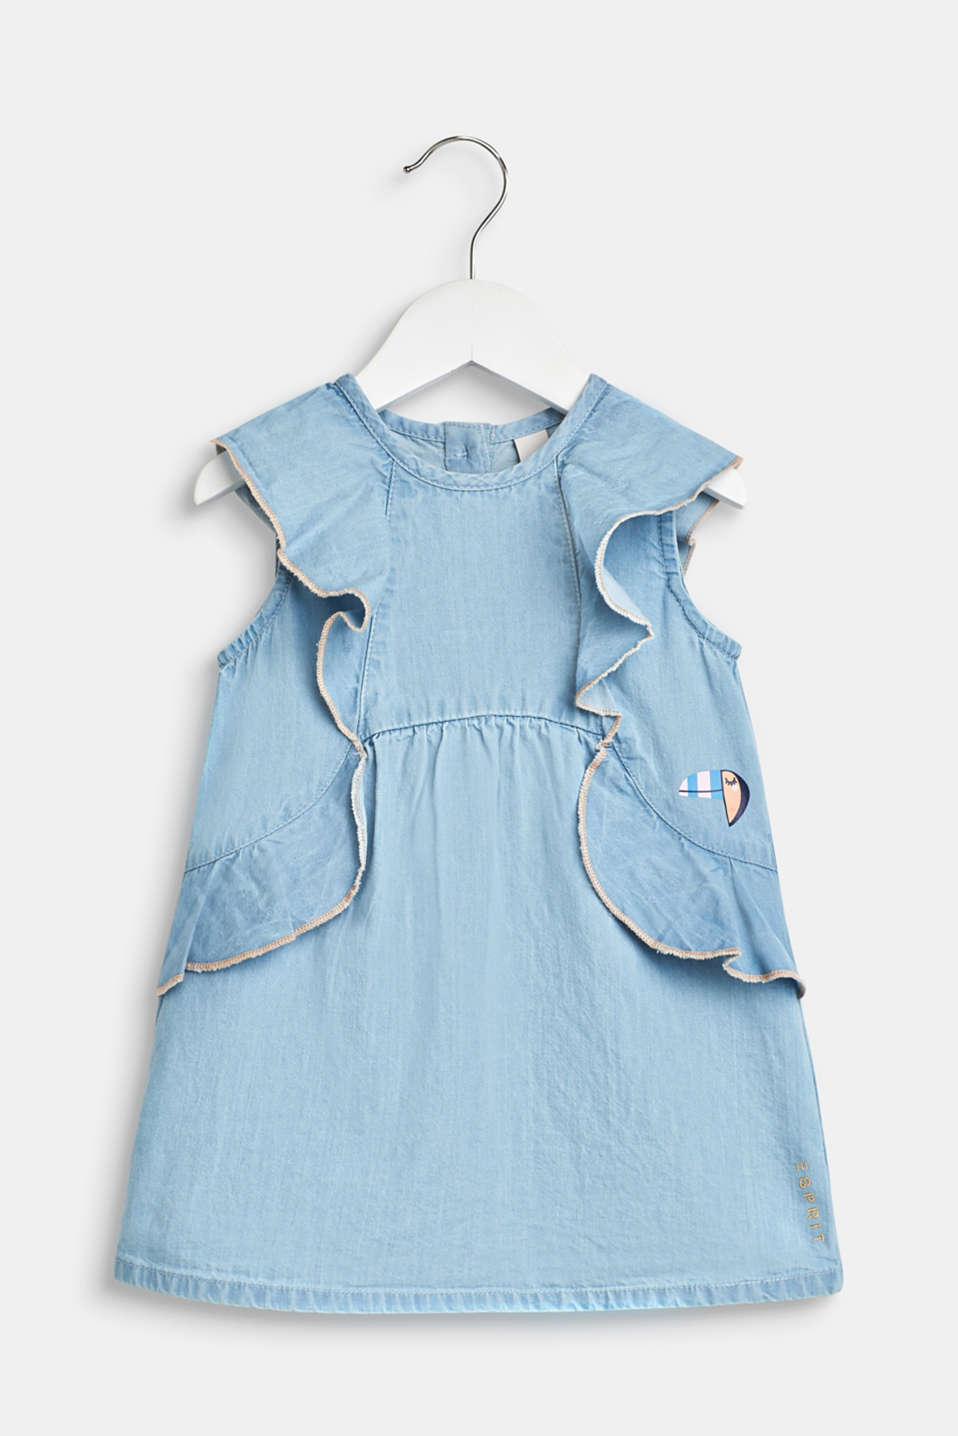 Esprit - Kleid in Denim-Optik, 100% Baumwolle